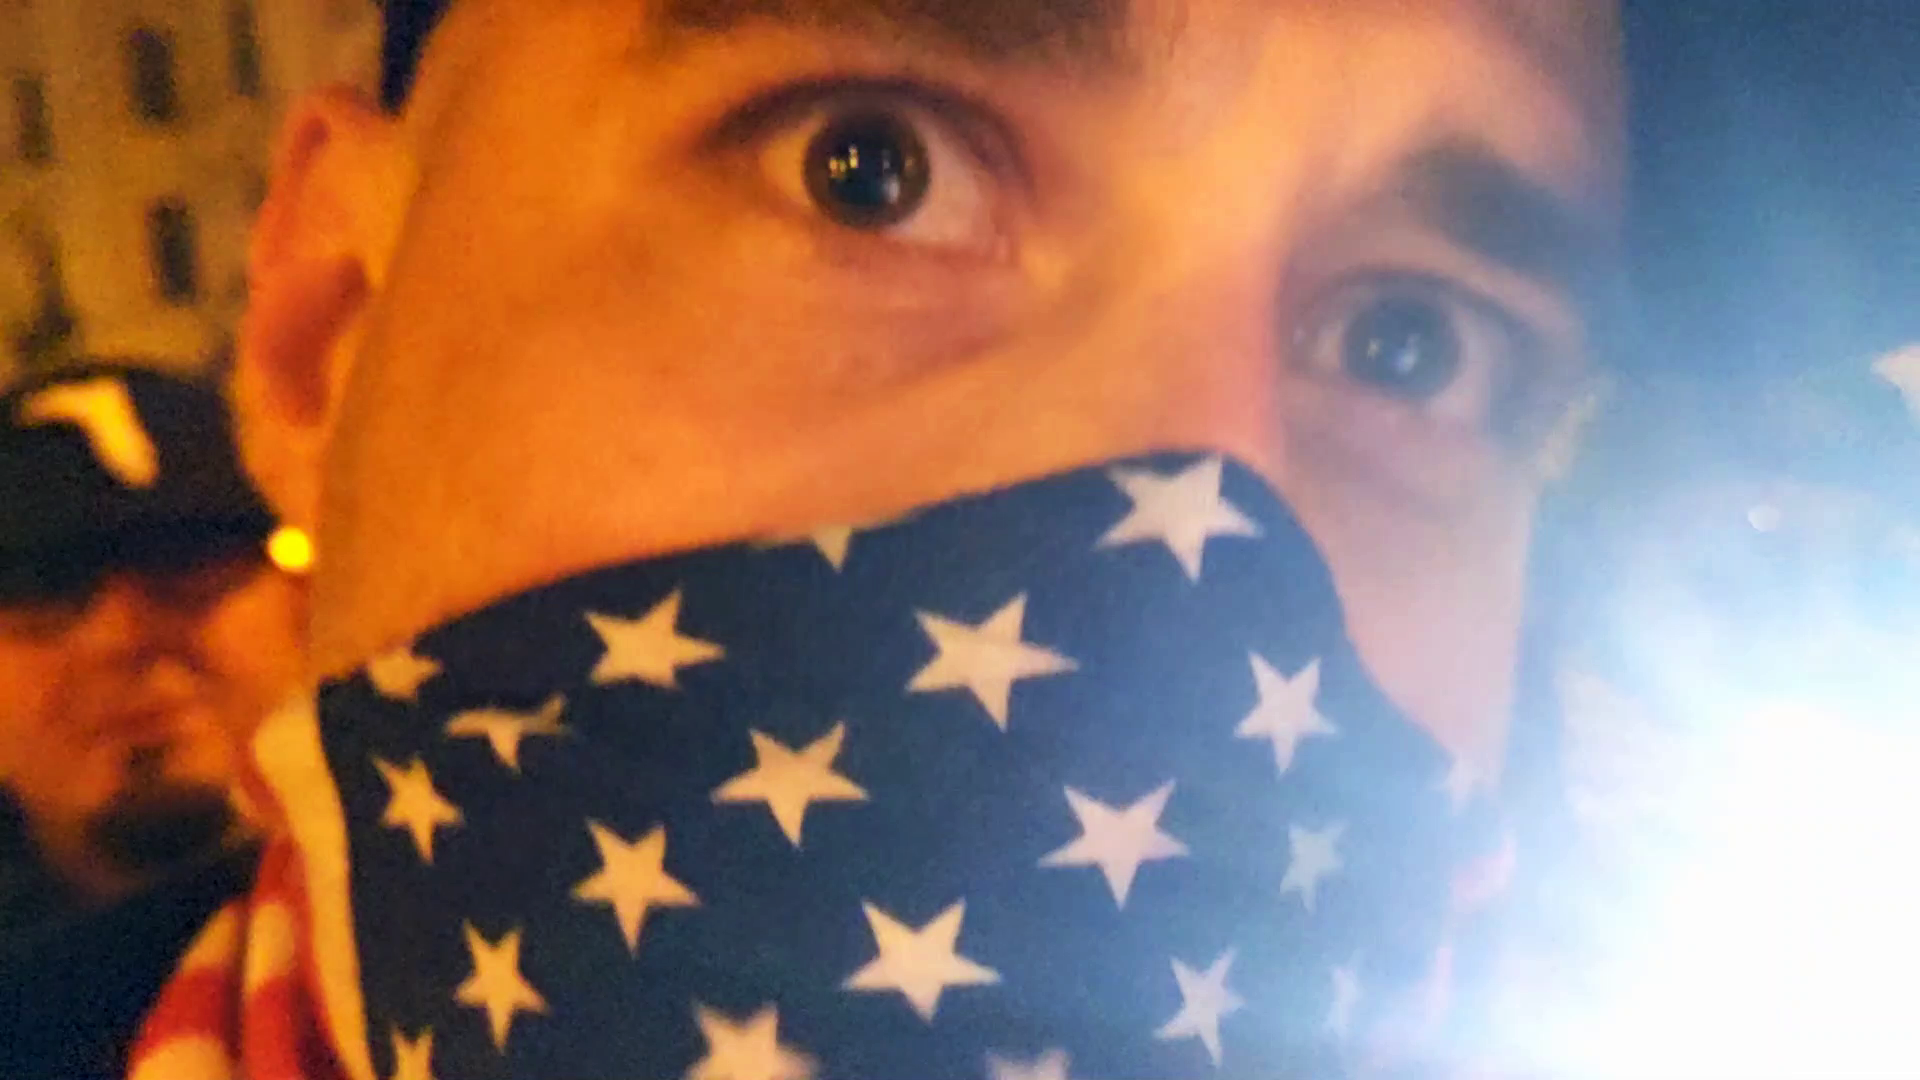 A man with an American Flag mask covering the lower half of his face looms uncomfortably close to the camera. He looks angry